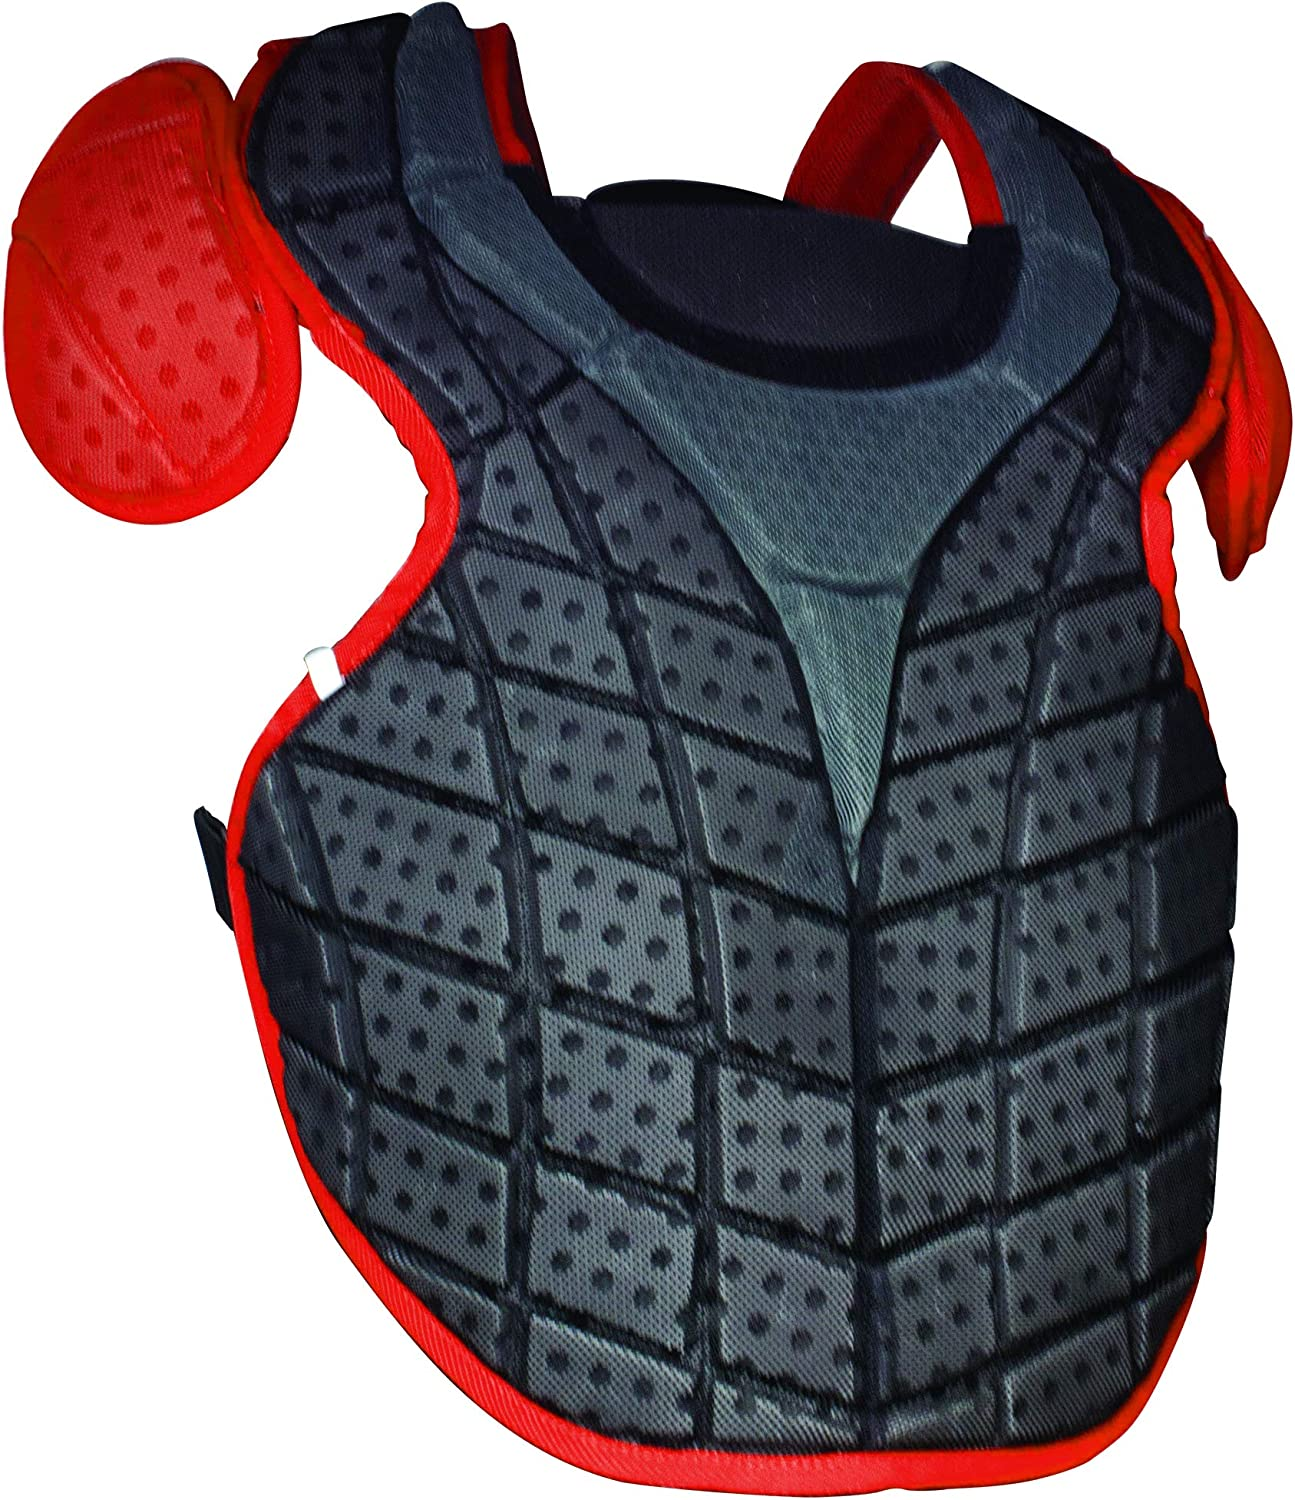 Tucci S3.5 Reversible Catchers Chest Protector for Baseball and Softball